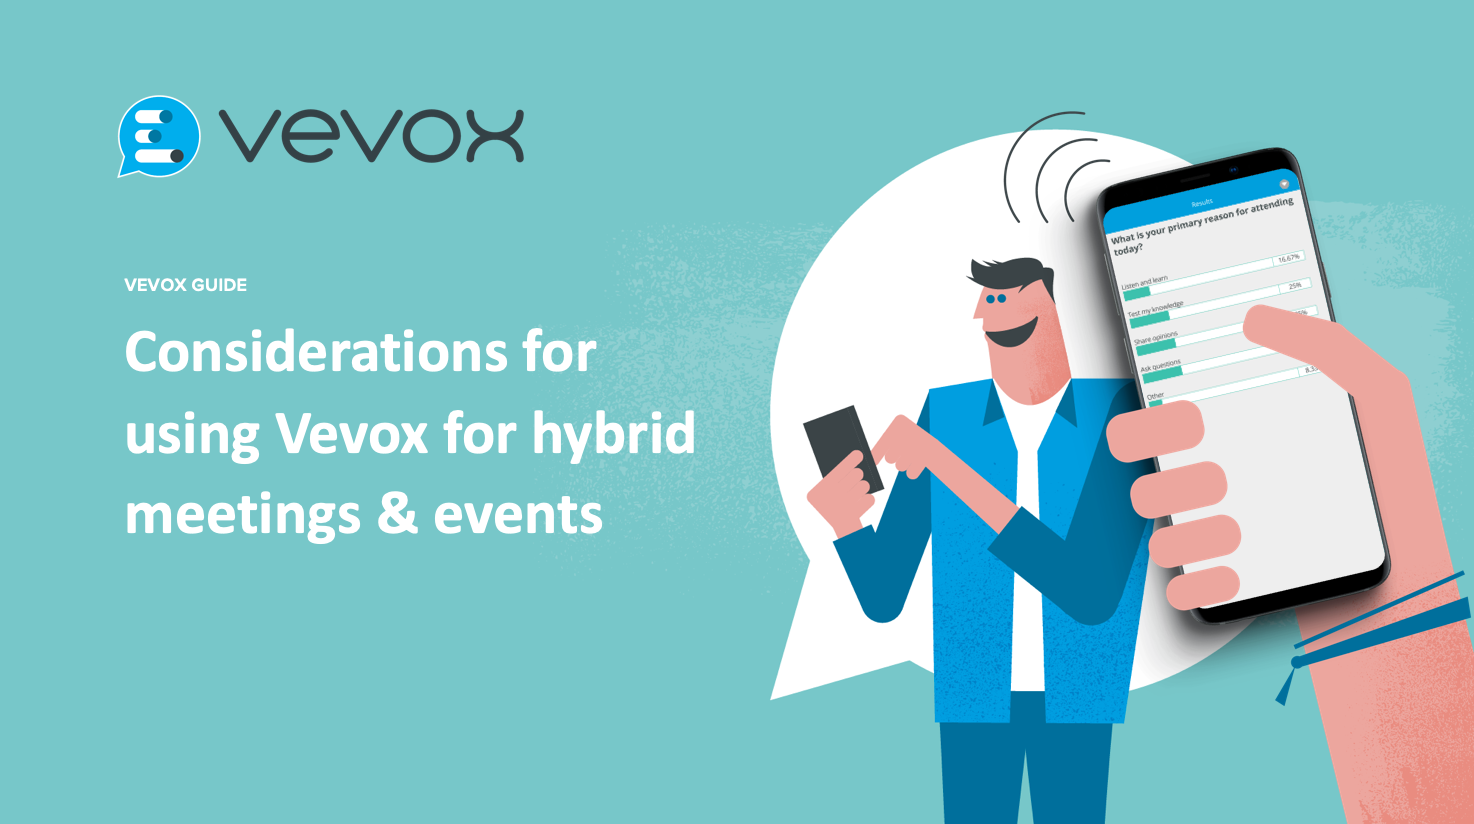 Considerations for using Vevox for hybrid meetings & events